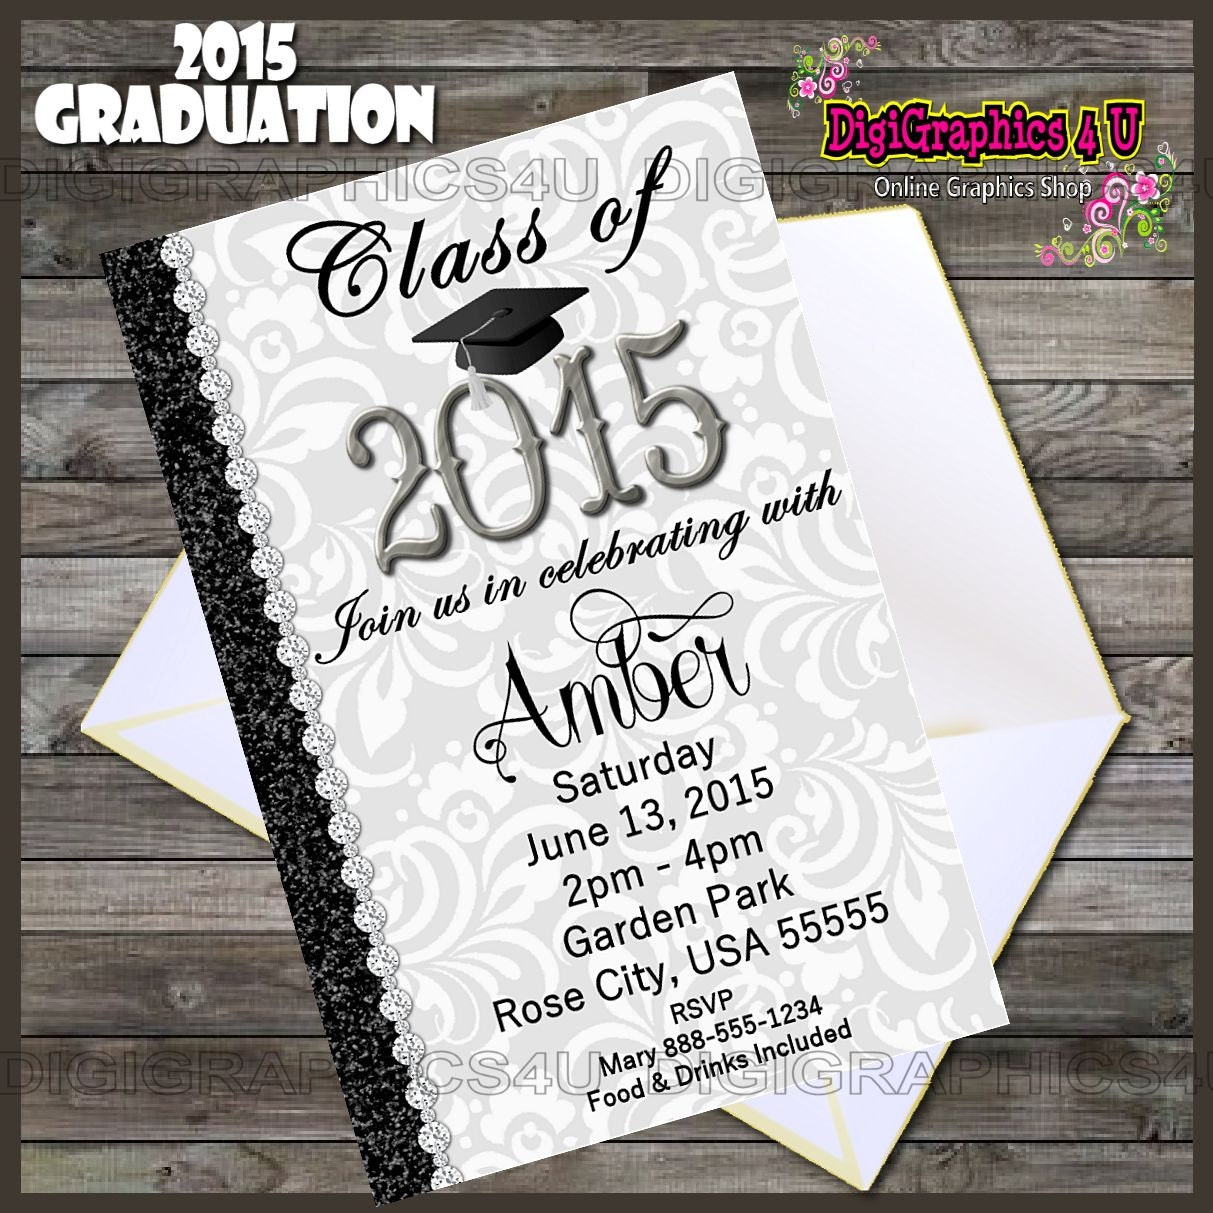 class of 2015 graduation party invitation by digigraphics4u